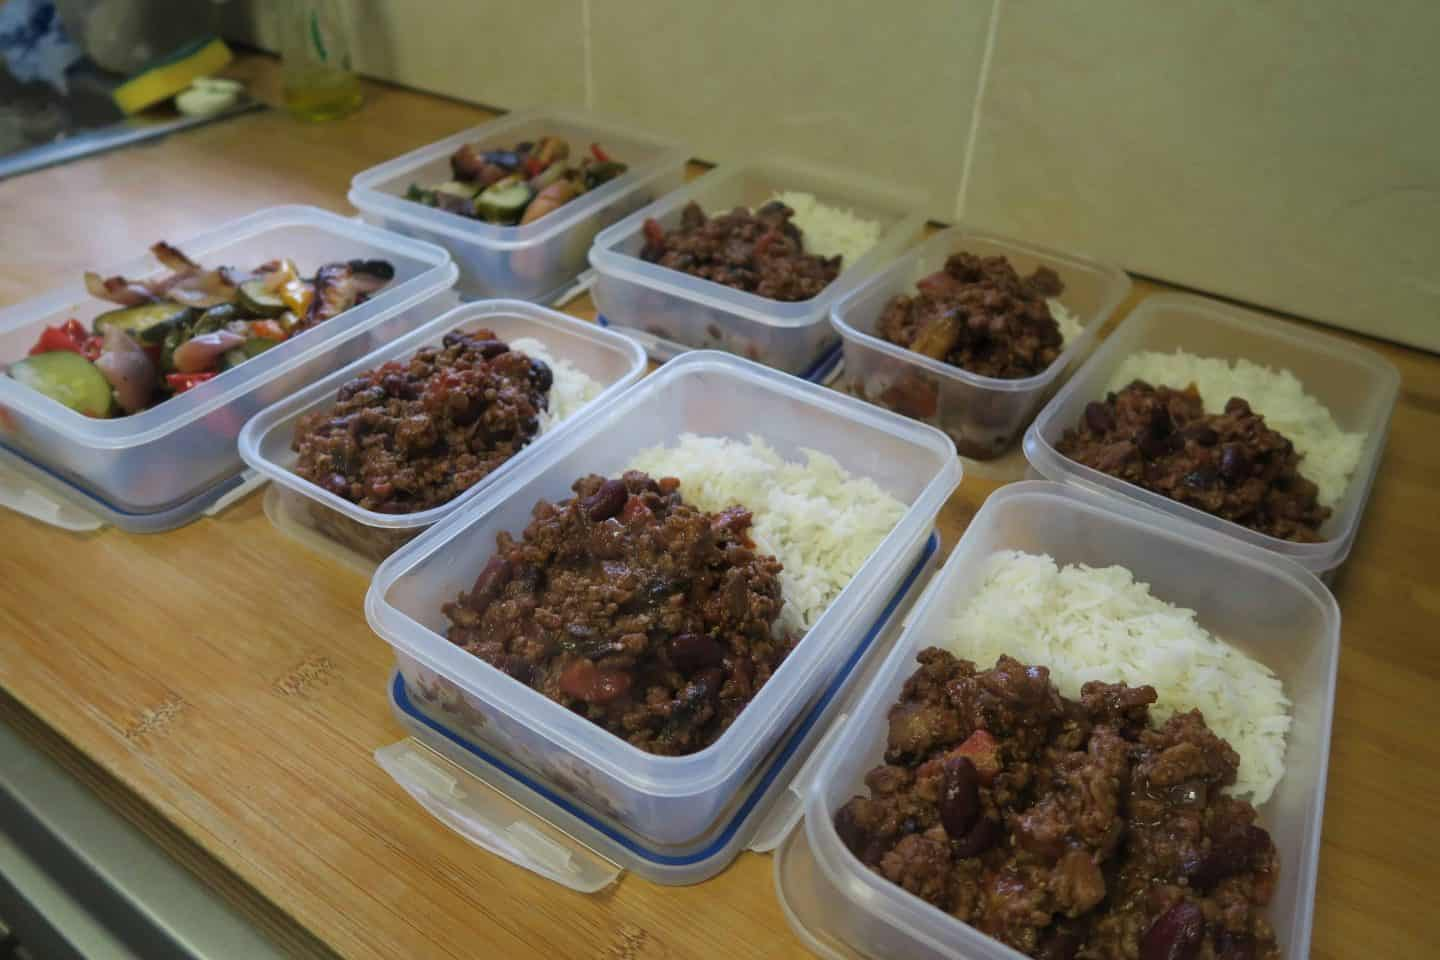 The Reform 8 week challenge begins: Meal prep and getting back into training